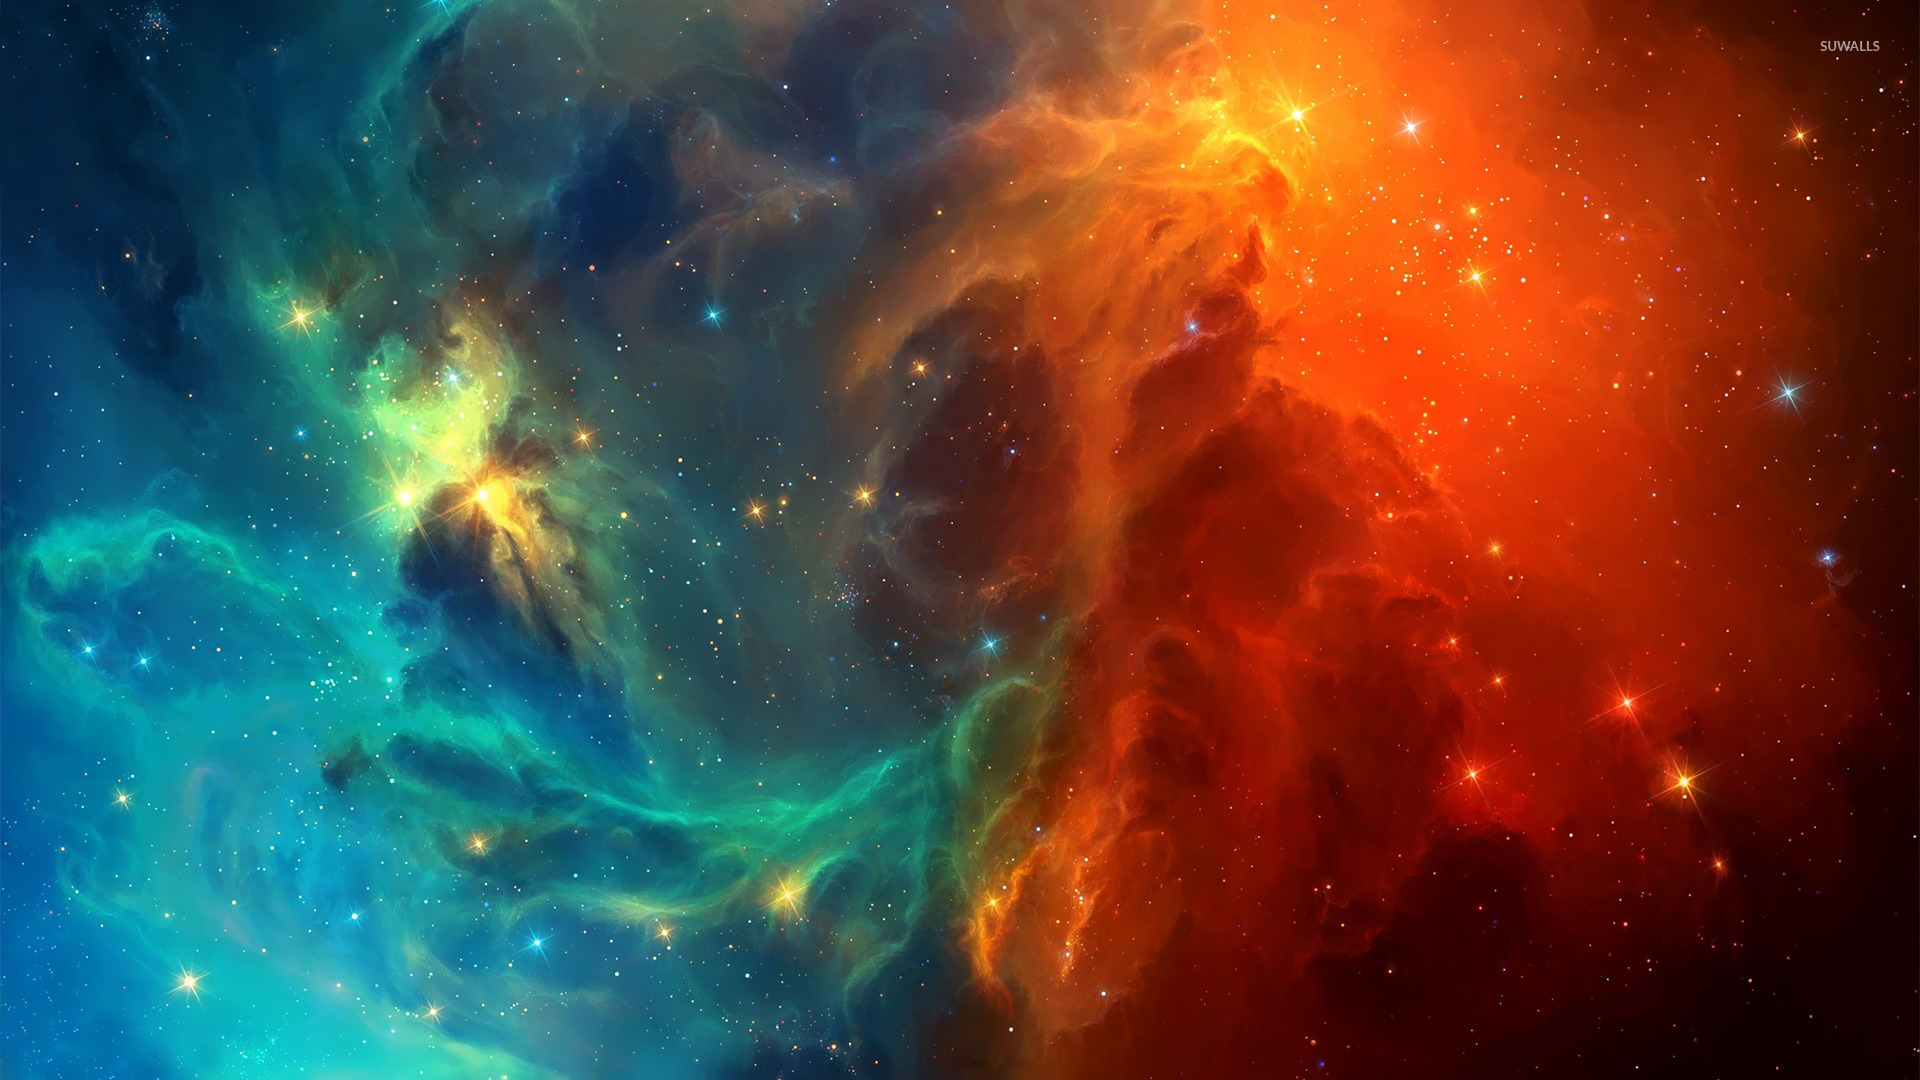 Colorful nebula wallpaper Space wallpapers